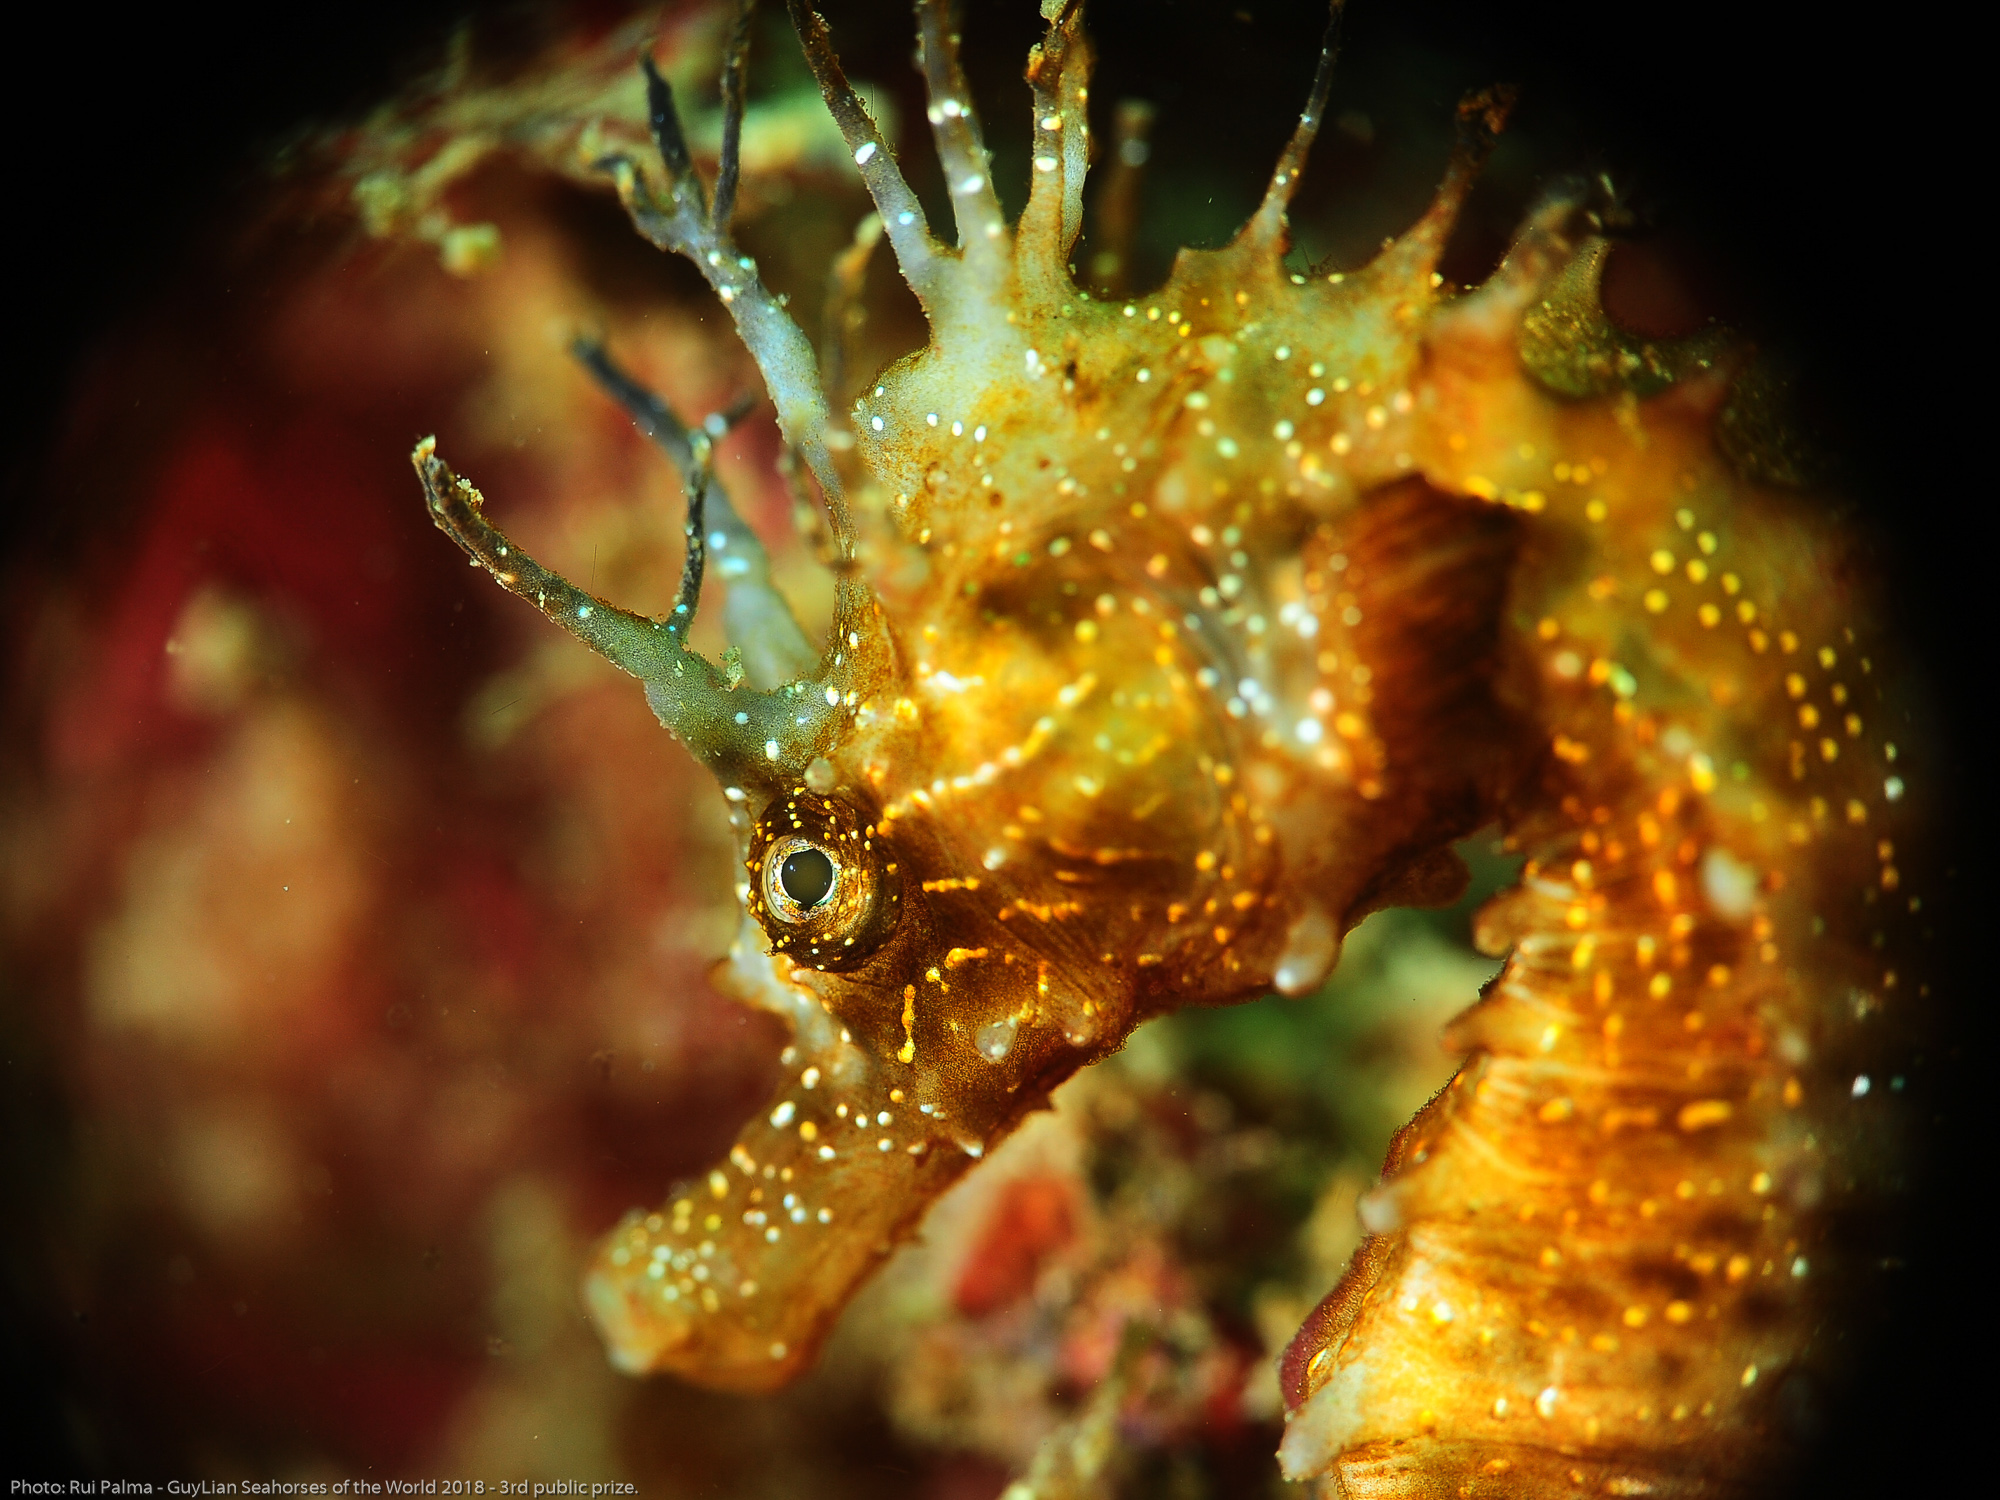 """3rd public prize. """"Seahorse face"""" Long-snouted seahorse ( Hippocampus guttulatus)  in Sesimbra, Portugal. Photo by Rui Palma/Guylian Seahorses of the World."""